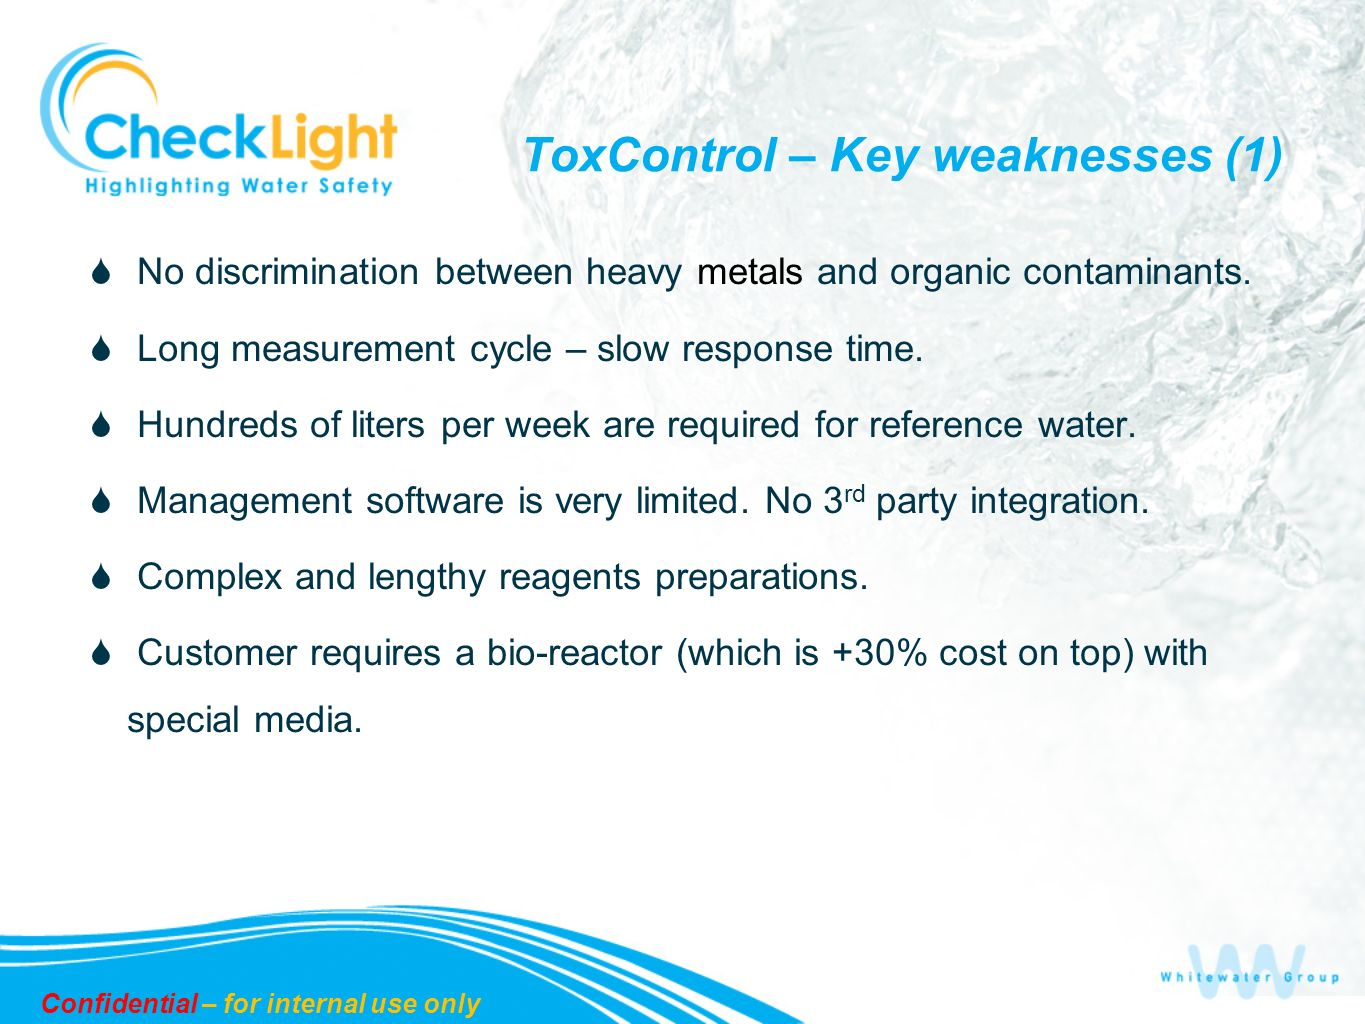 ToxControl – Key weaknesses (1) No discrimination between heavy metals and organic contaminants. Long measurement cycle – slow response time. Hundreds